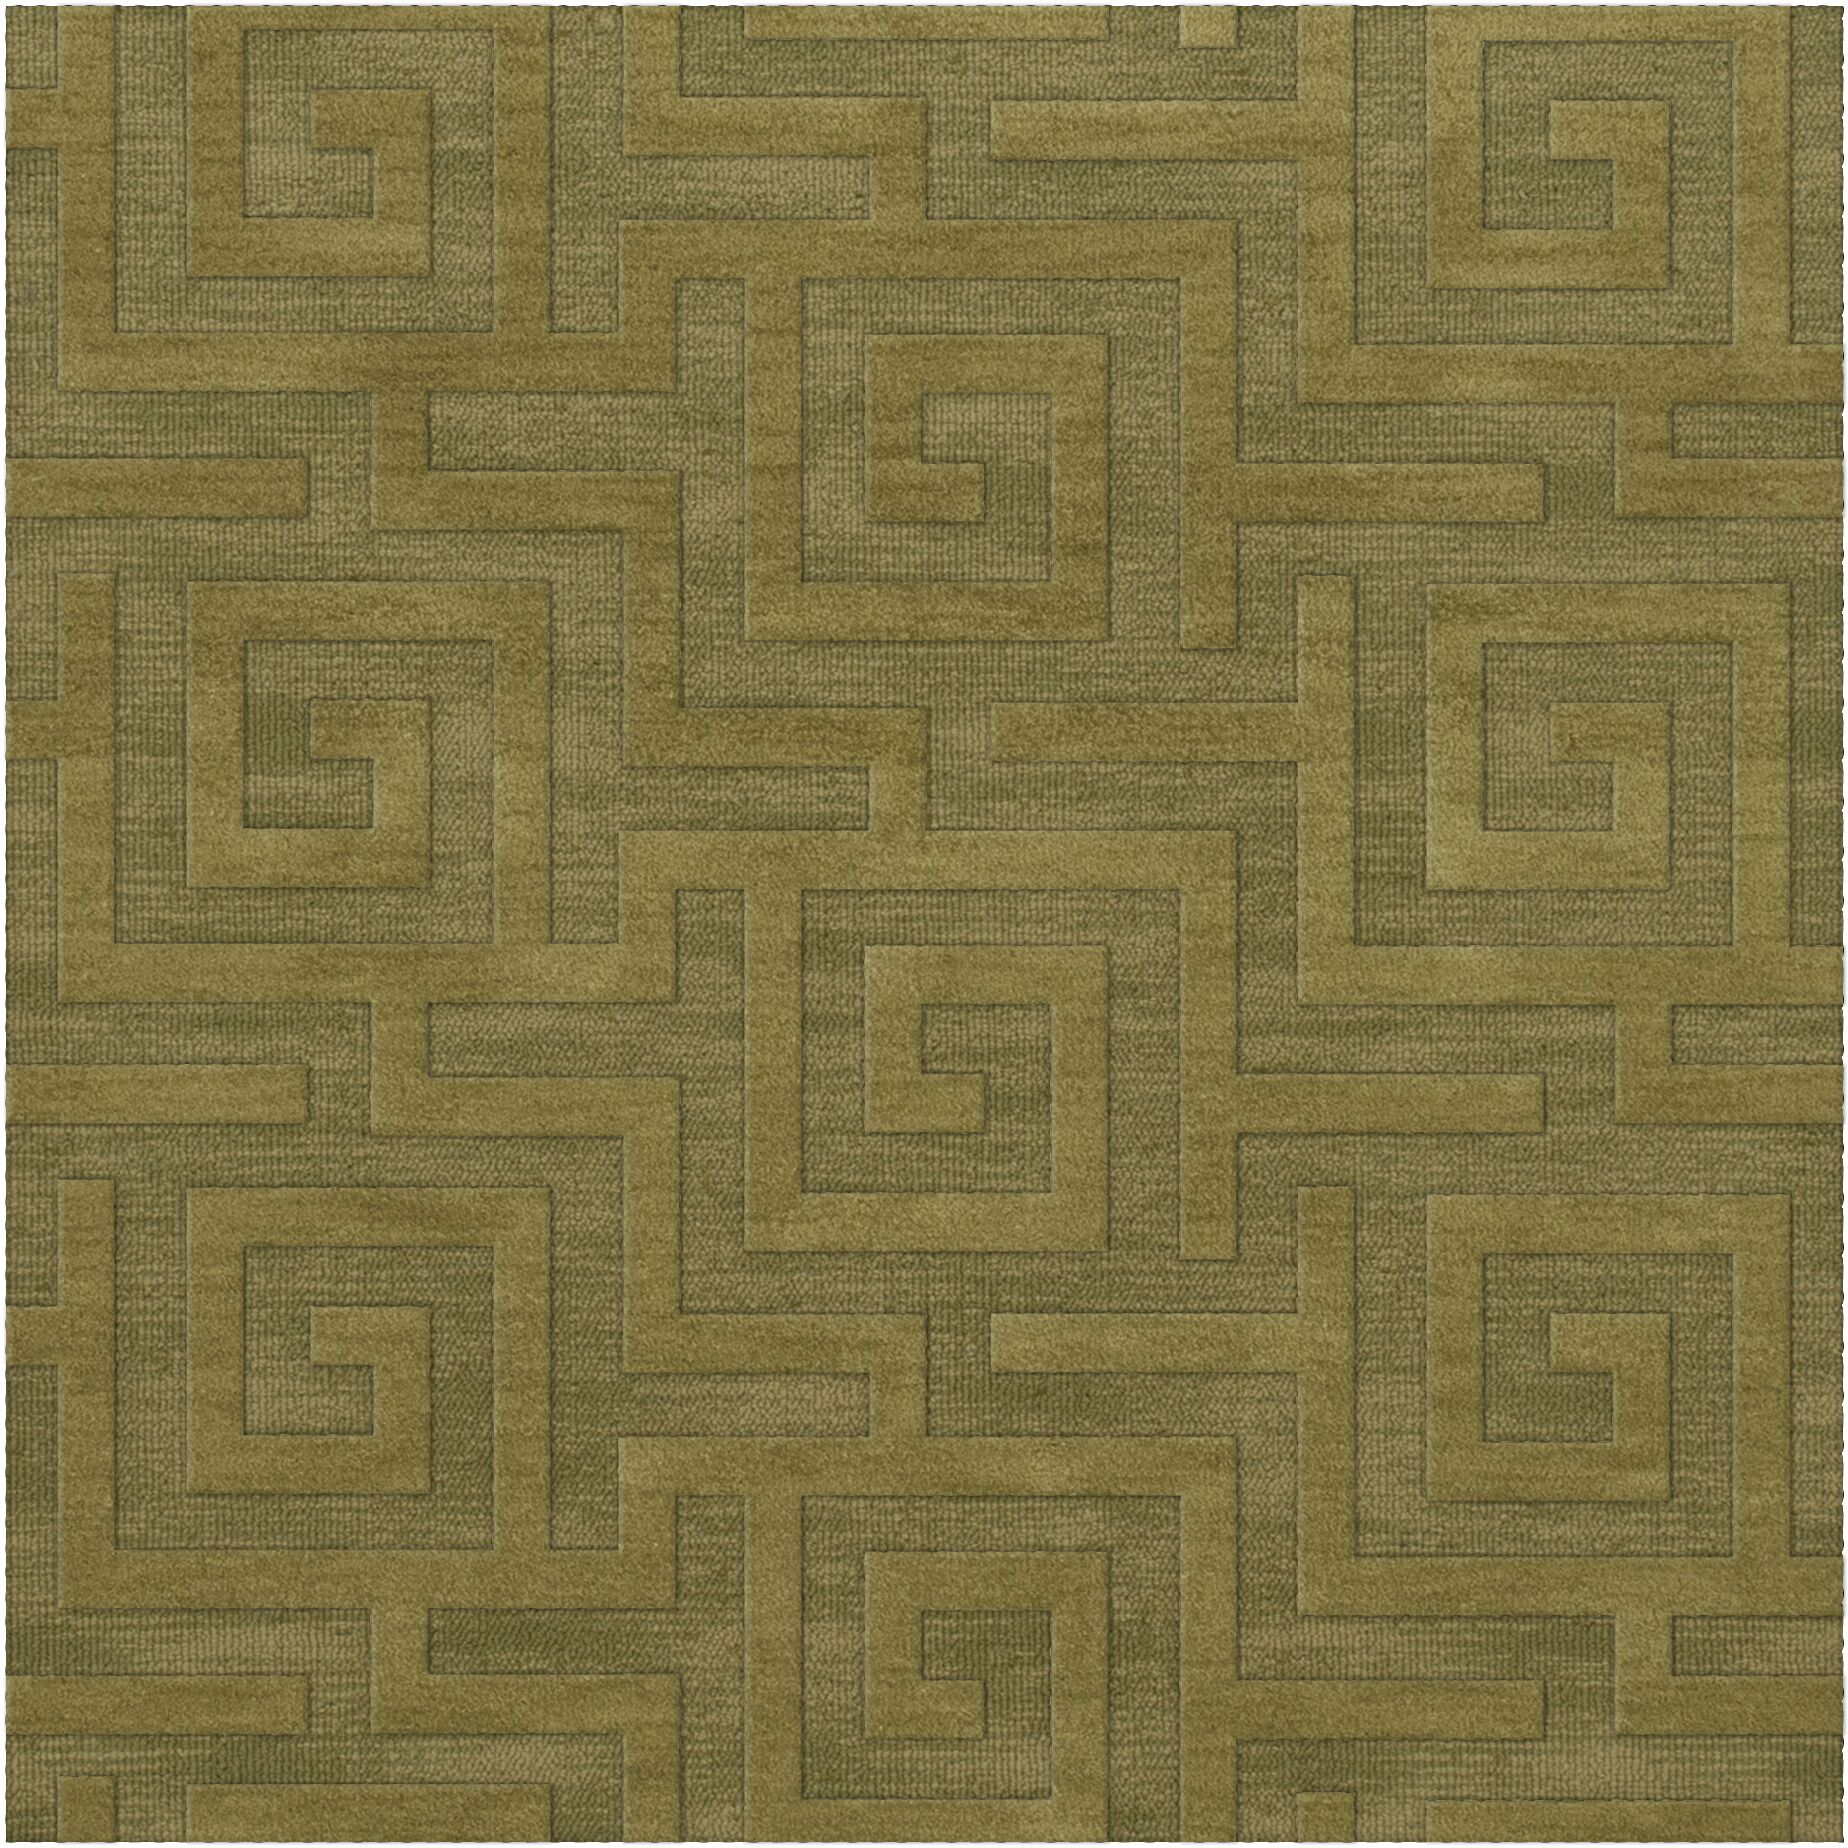 Dover Tufted Wool Pear Area Rug Rug Size: Square 8'